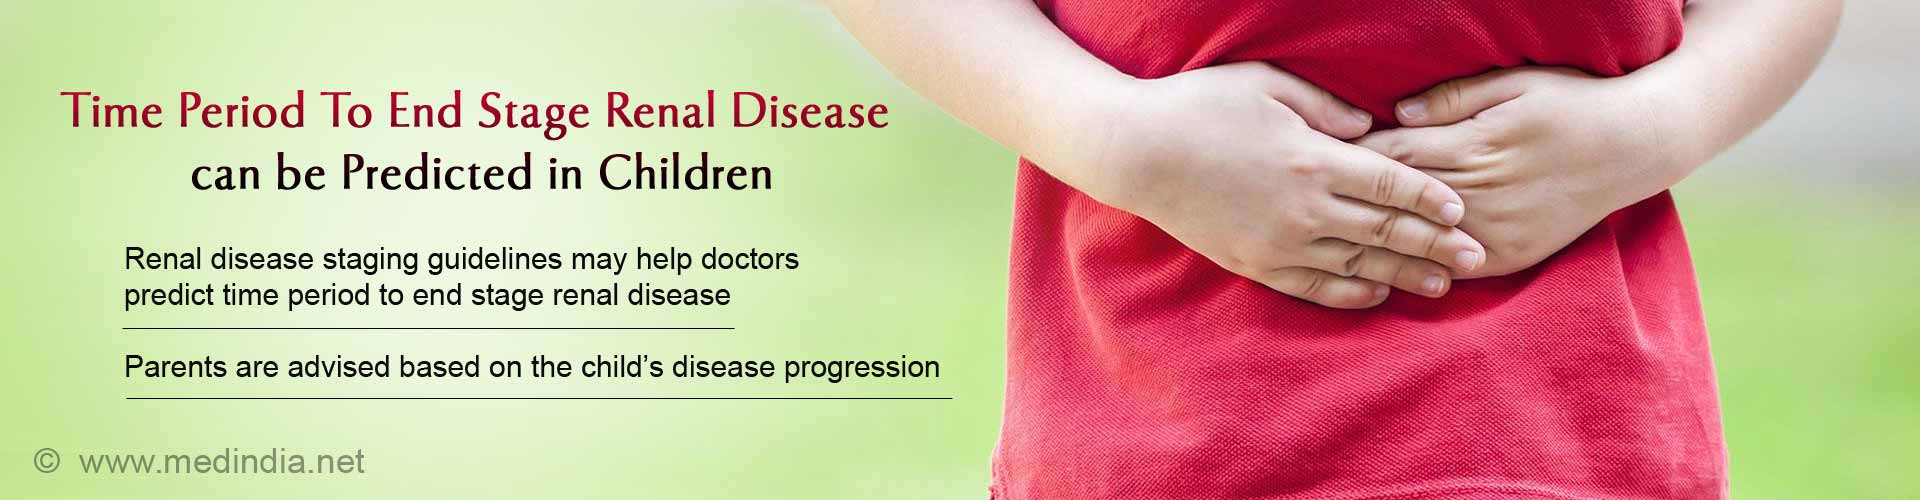 Predicting Time Period To End Stage Renal Disease In Children With Kidney Disease